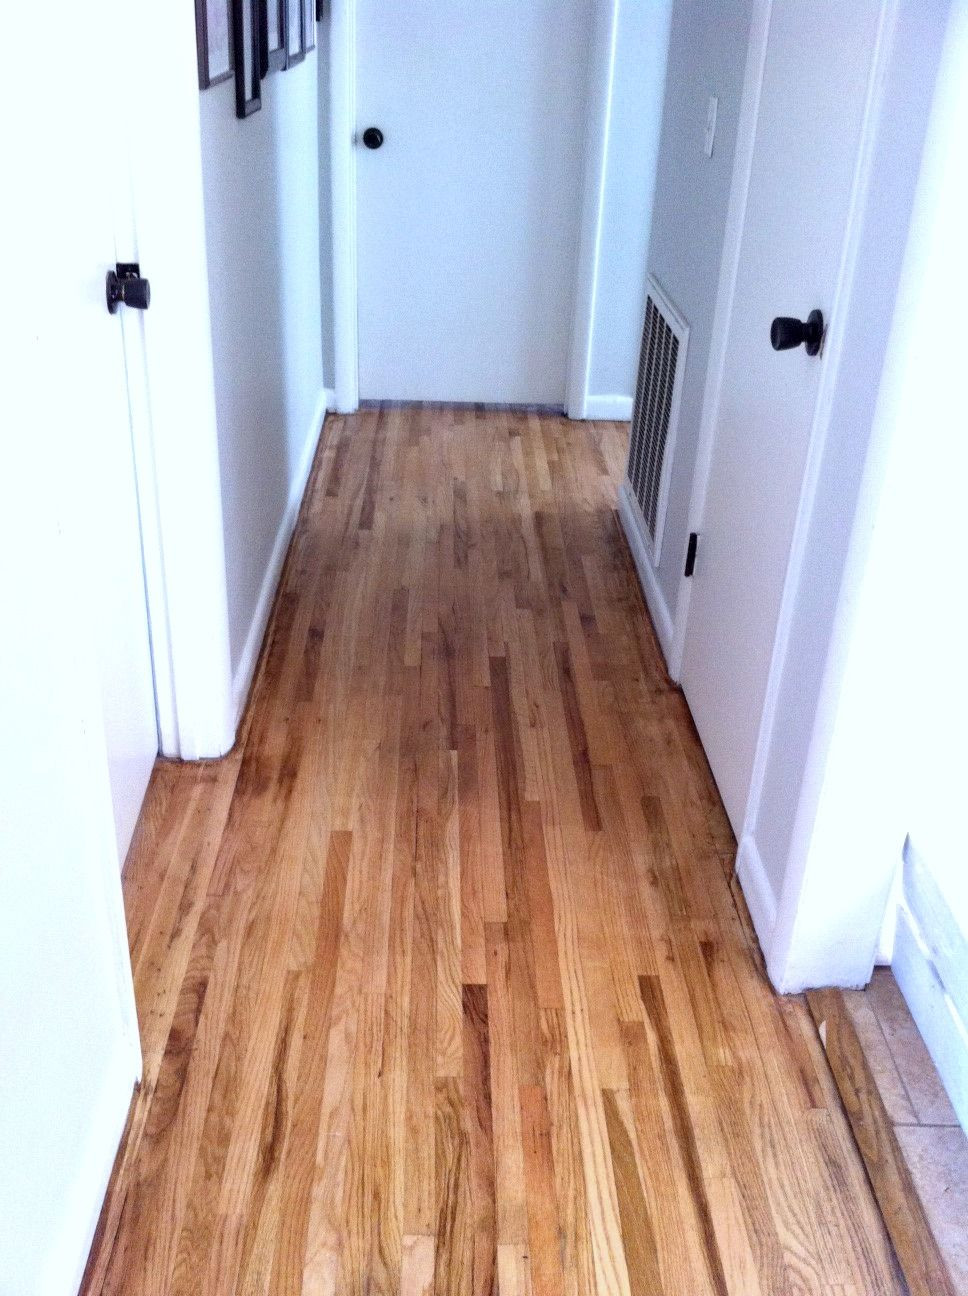 hardwood flooring cost lowes of this is what happens when you dont listen to the folks at lowes for refinishing hardwood floors includes price breakdown mom in music city i didnt stain my floors i think the natural wood goes well with our house